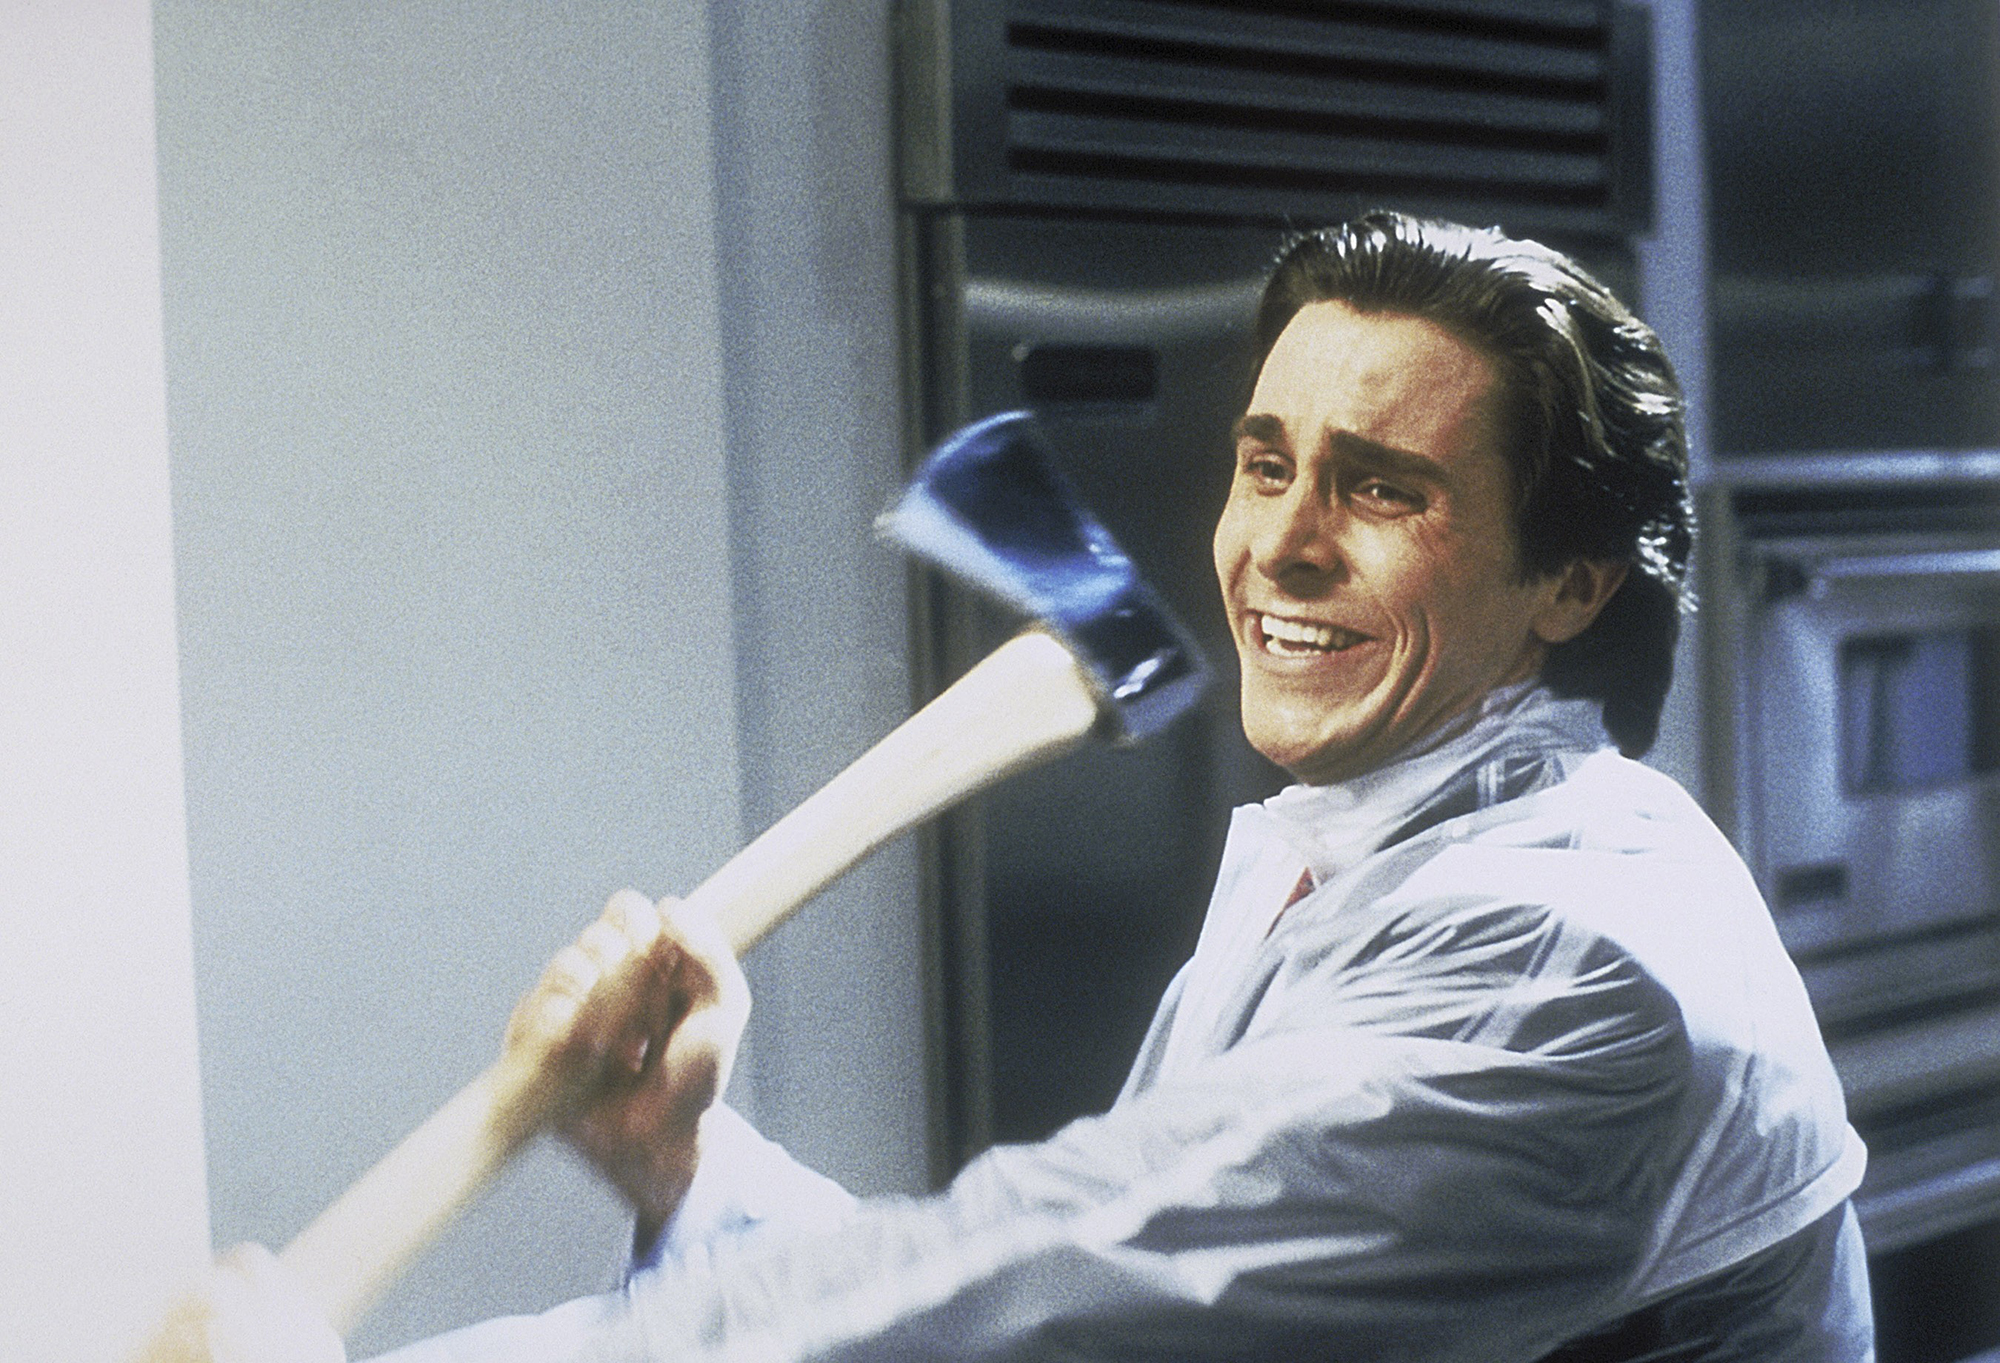 AMERICAN PSYCHO, Christian Bale, 2000. ©Lions Gate/courtesy Everett Collection